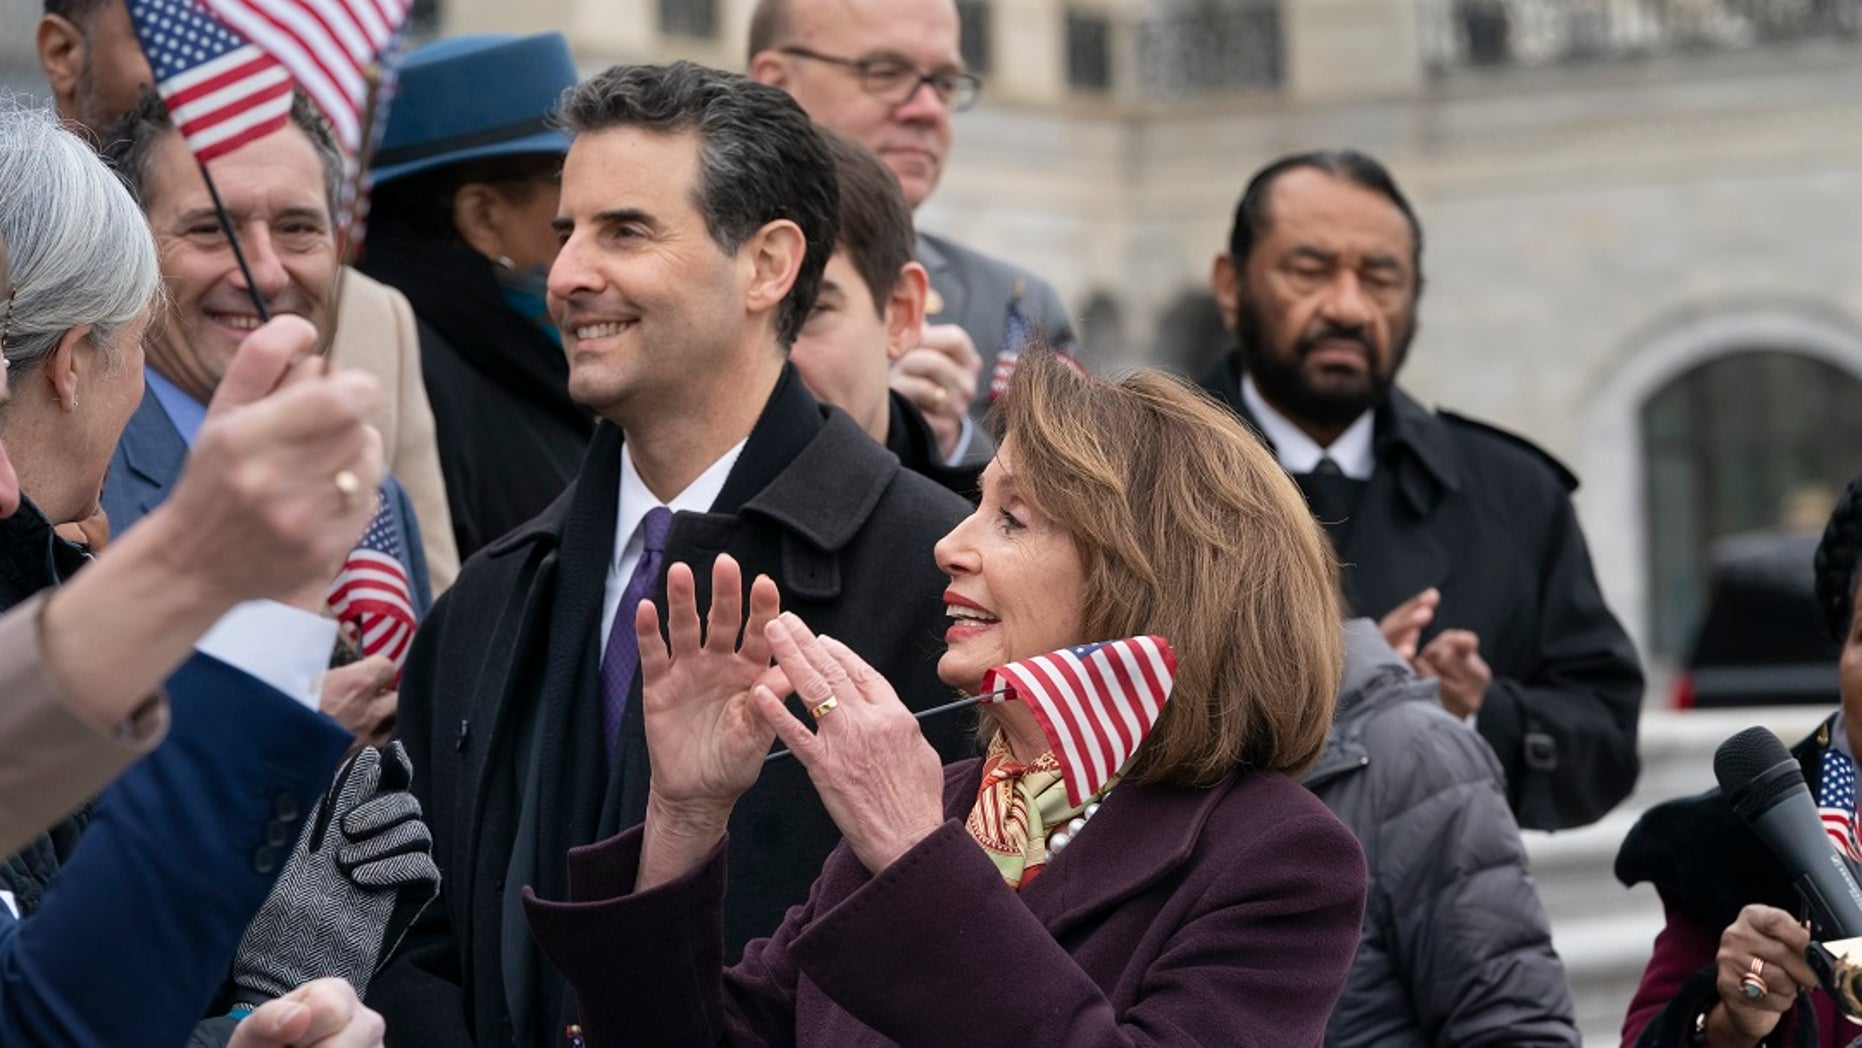 """House Speaker Nancy Pelosi, D-Calif., and other House Democrats rally ahead of the passage of H.R. 1, """"The For the People Act,"""" at the Capitol in Washington, Friday, March 8, 2019. (Associated Press)"""